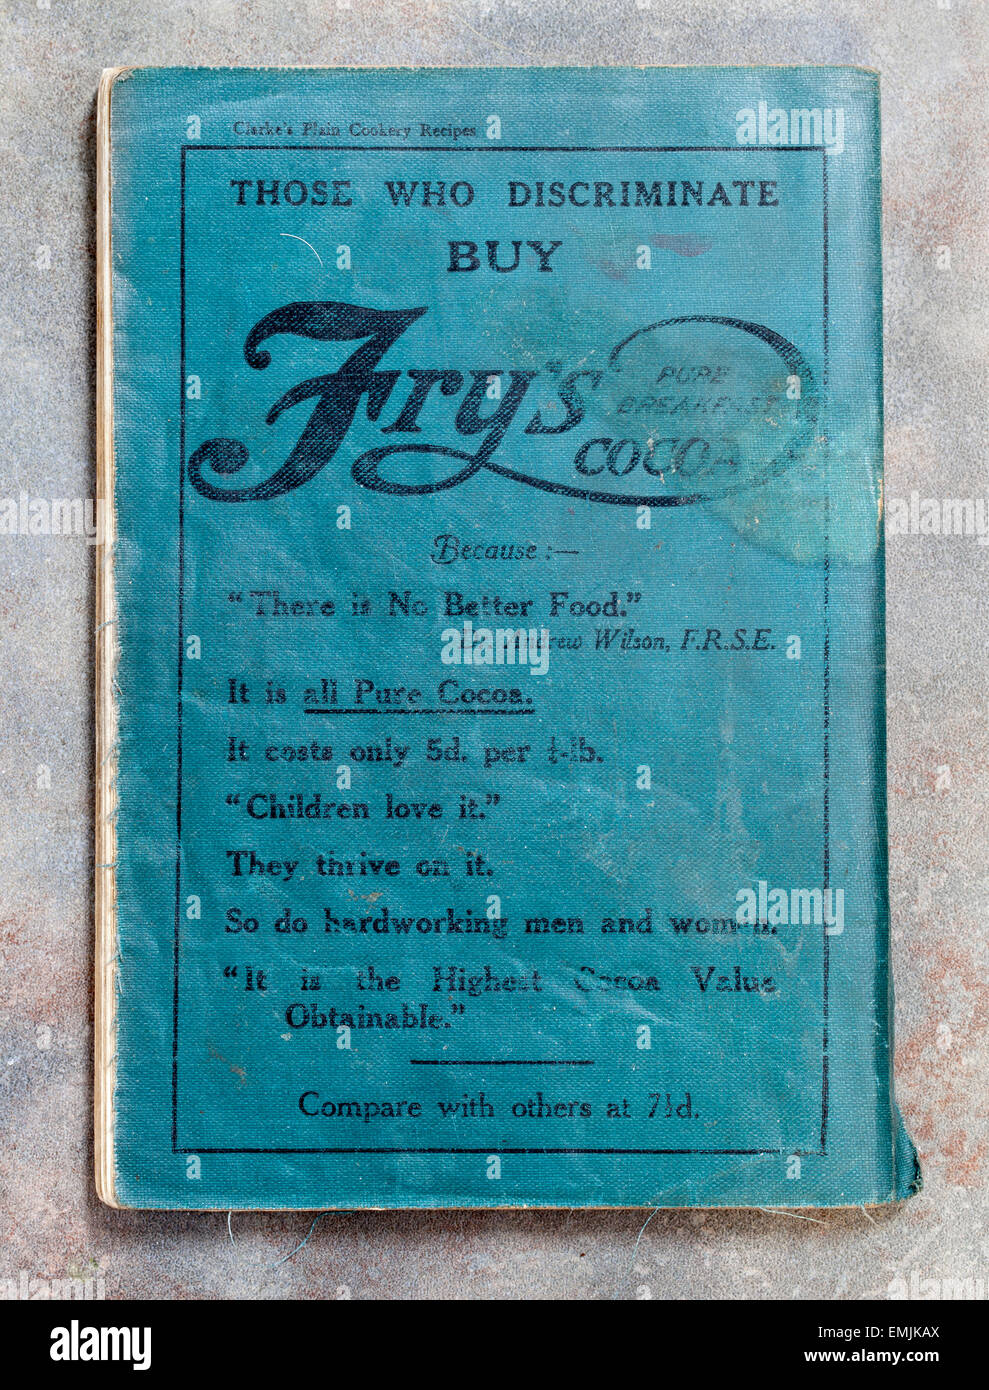 Vintage Advert for Fry's Pure Breakfast Cocoa on back of Clarke's Plain Cookery Recipes - Stock Image